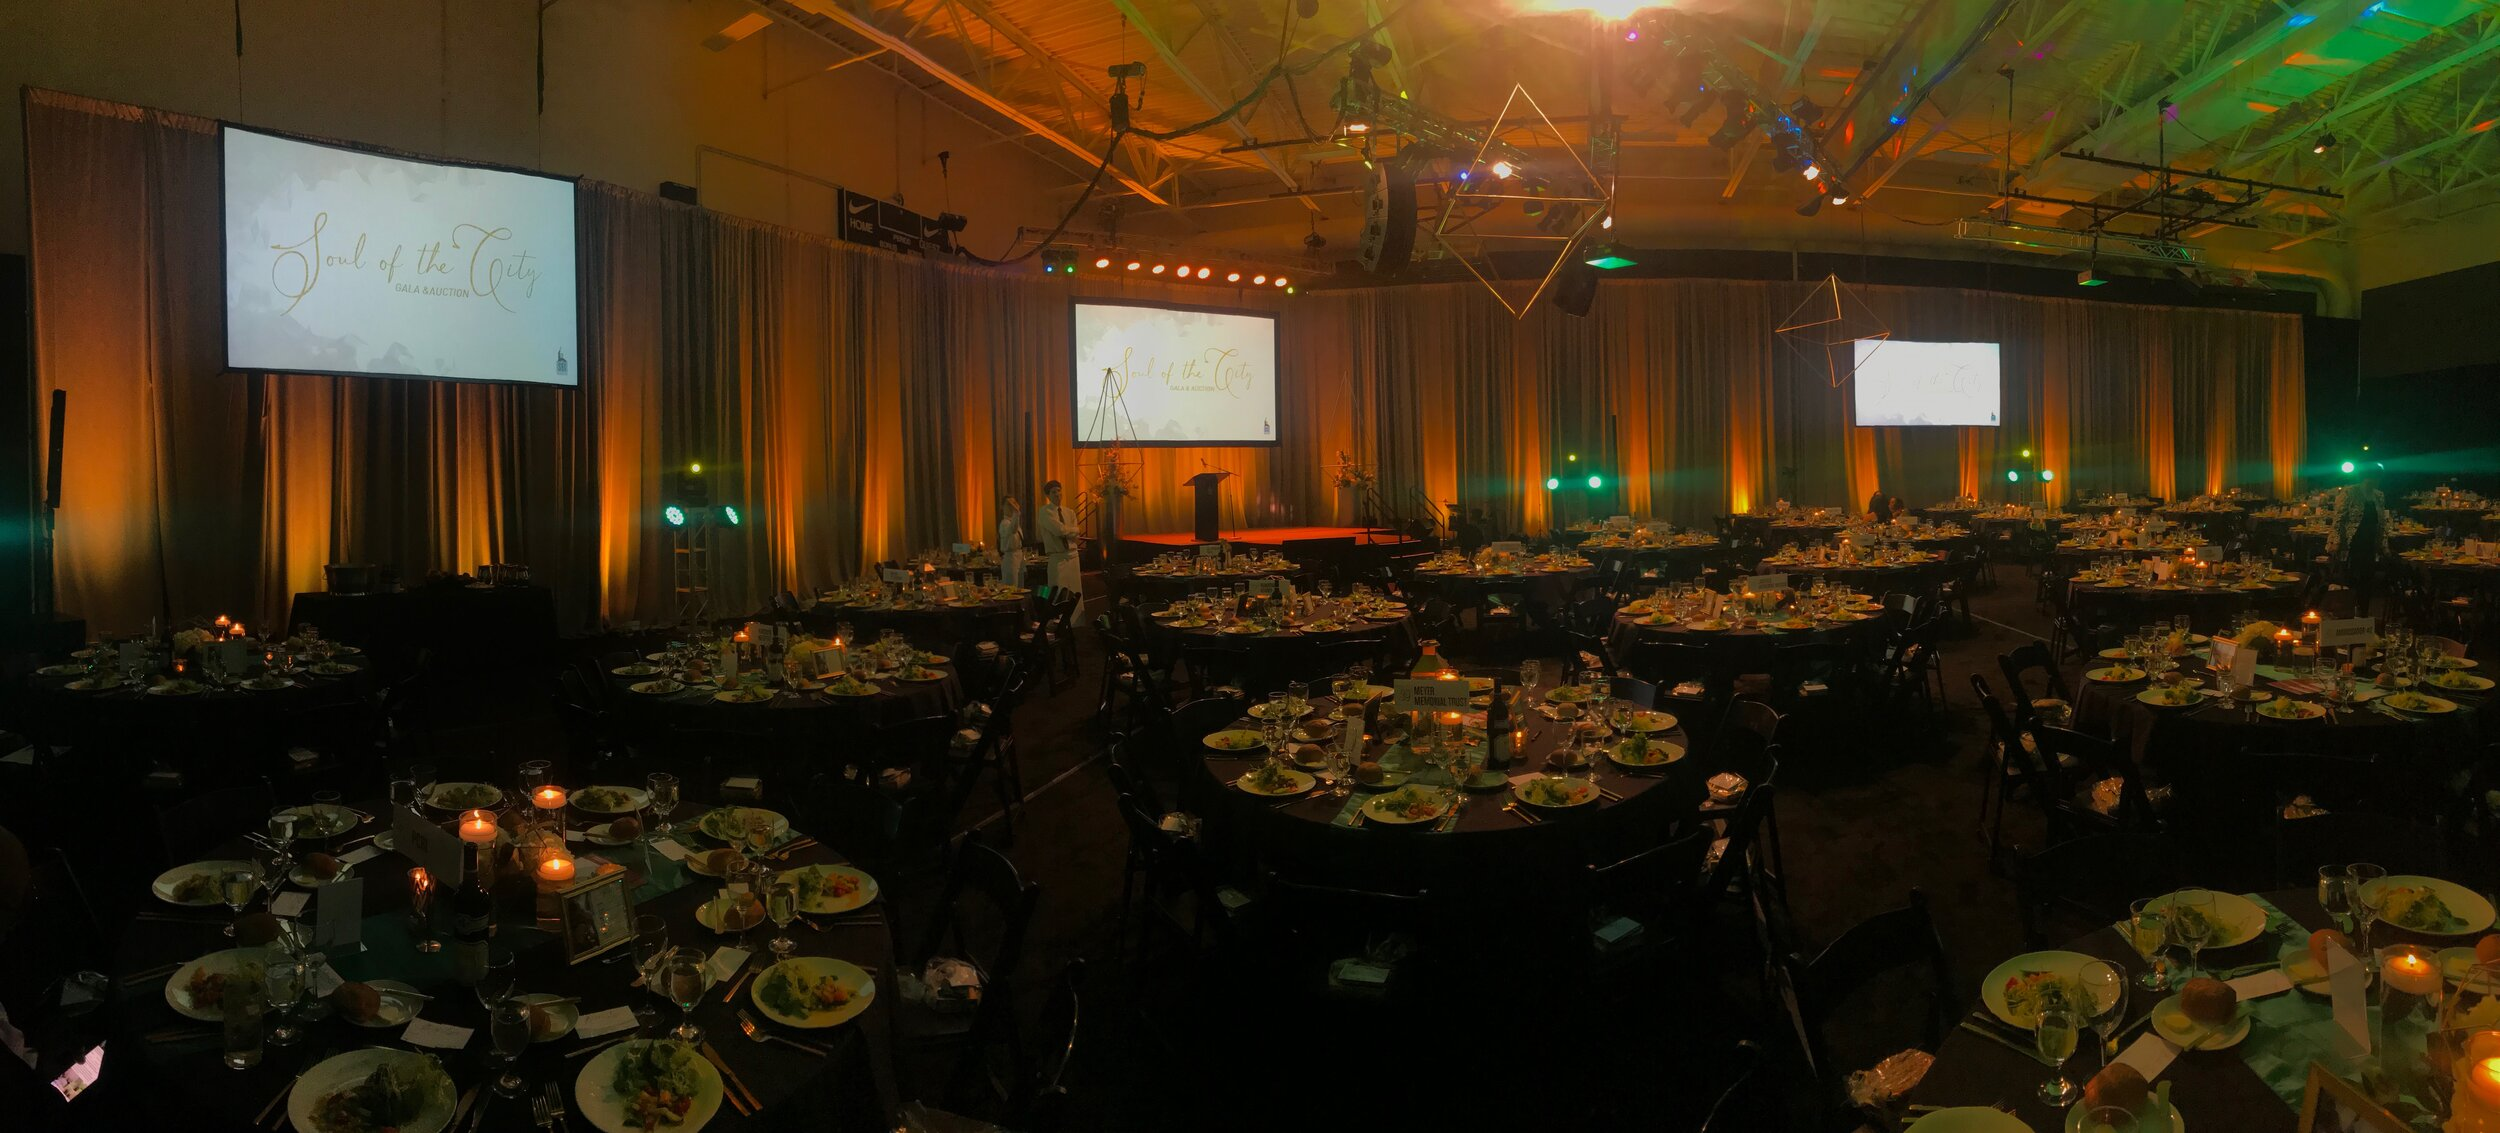 draping for fundraiser event.  black with amber uplighting.